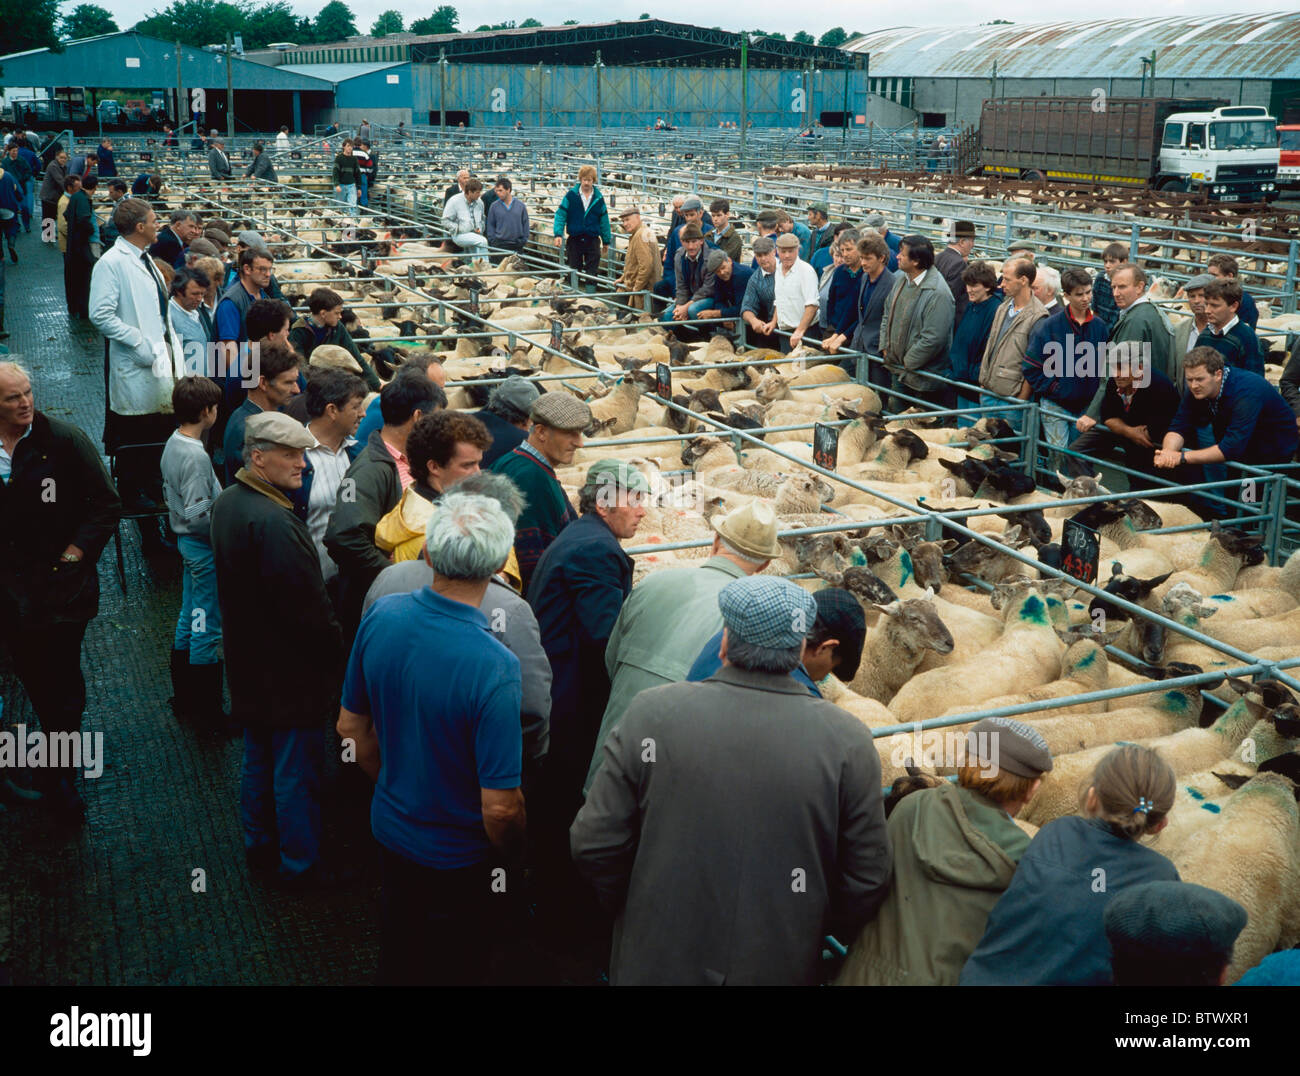 Sheep Mart (Market), Maynooth, Co Kildare, Ireland - Stock Image